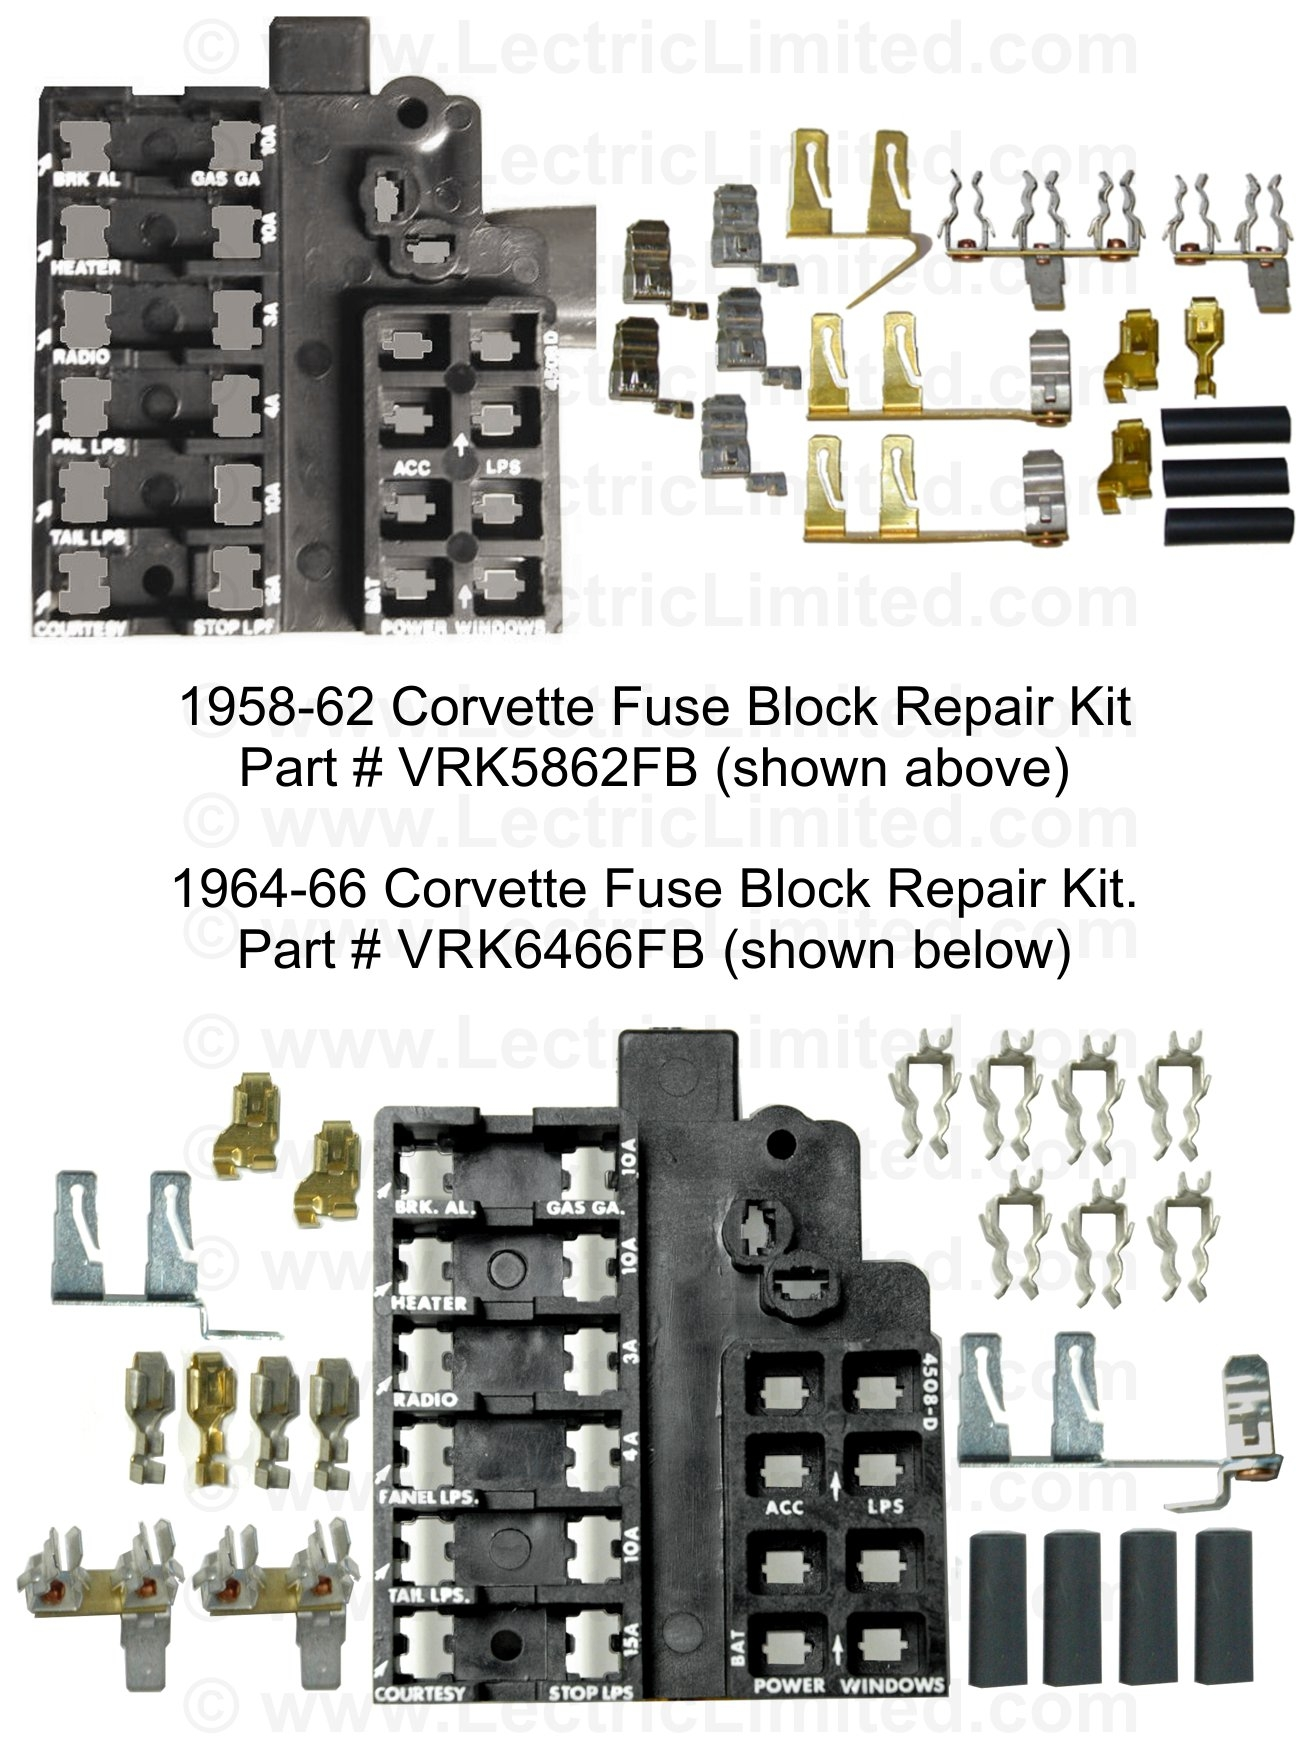 repair components household fuse box fuse block repair kit